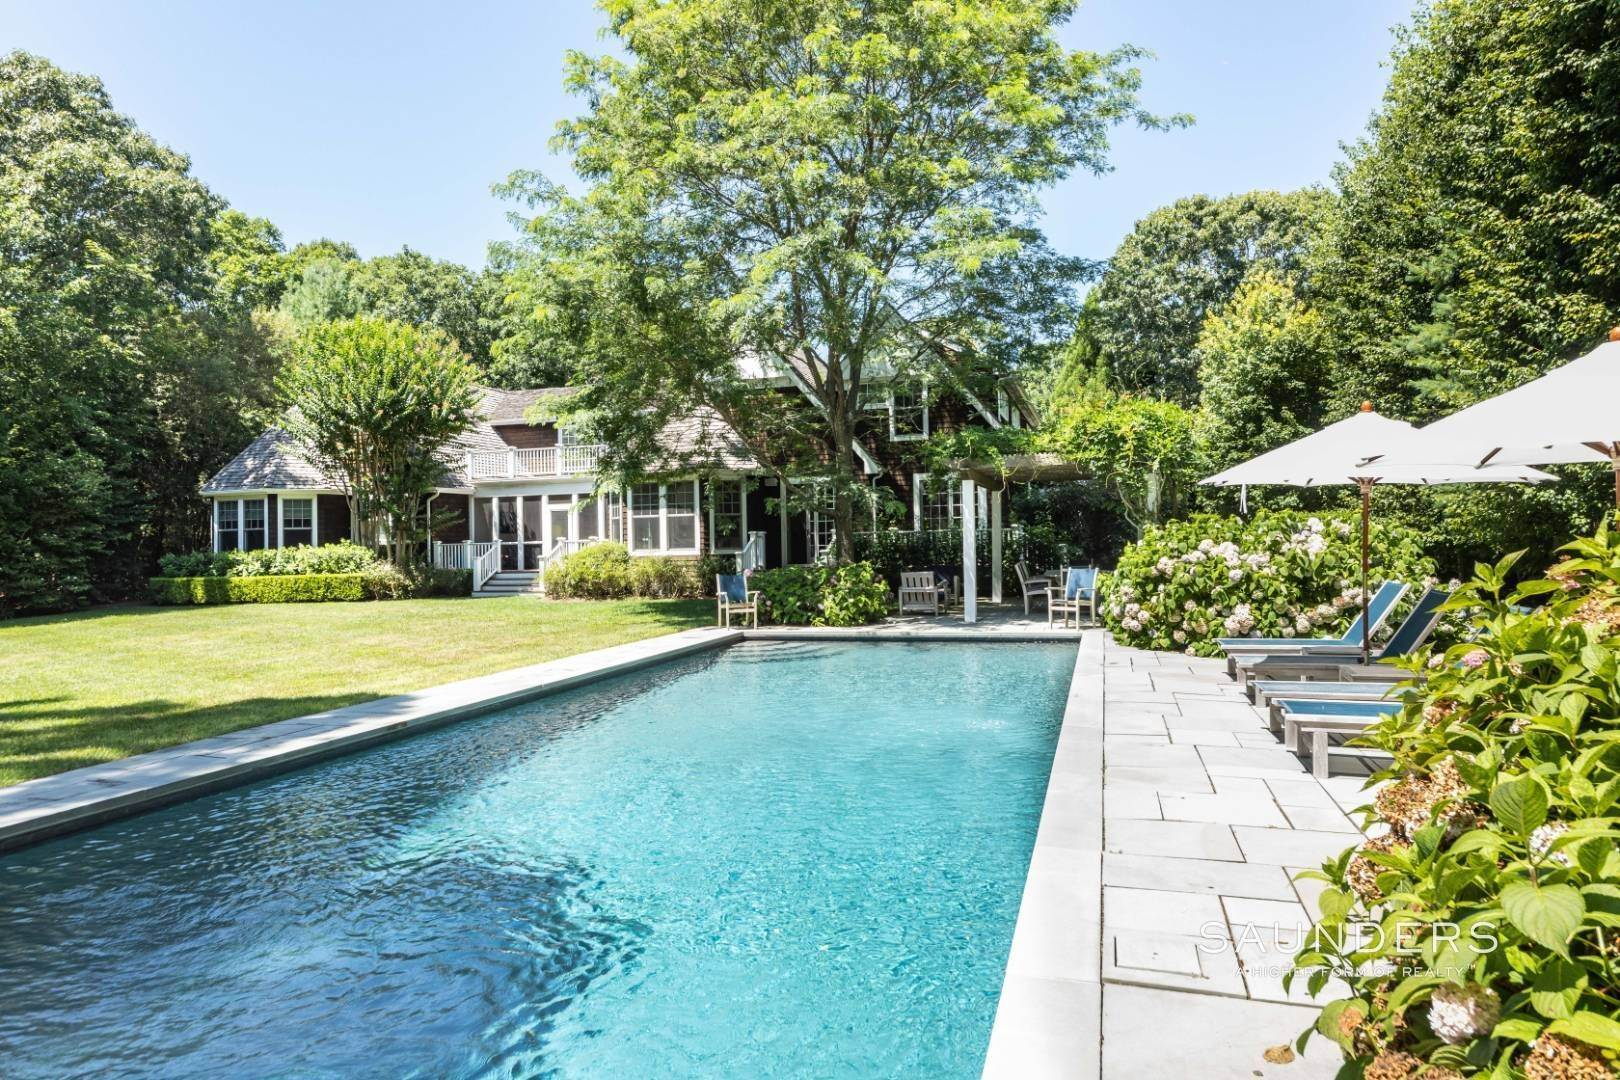 Single Family Homes for Sale at Wainscott South Traditional Near Beach Lane 10 Merriwood Drive, Wainscott, East Hampton Town, NY 11975